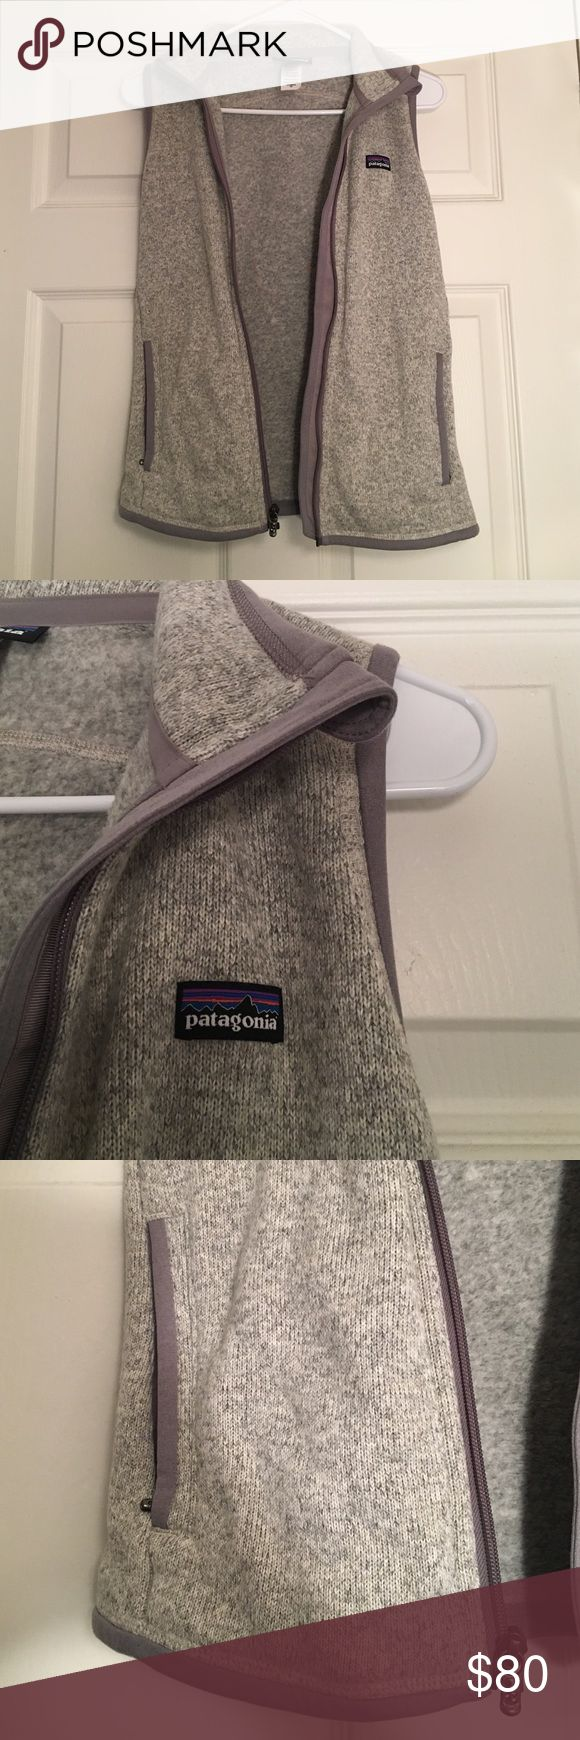 Patagonia Grey Zip-up Vest Paragonia grey zip-up vest with 2 zip up pockets and 2 inside pockets. Patagonia Jackets & Coats Vests